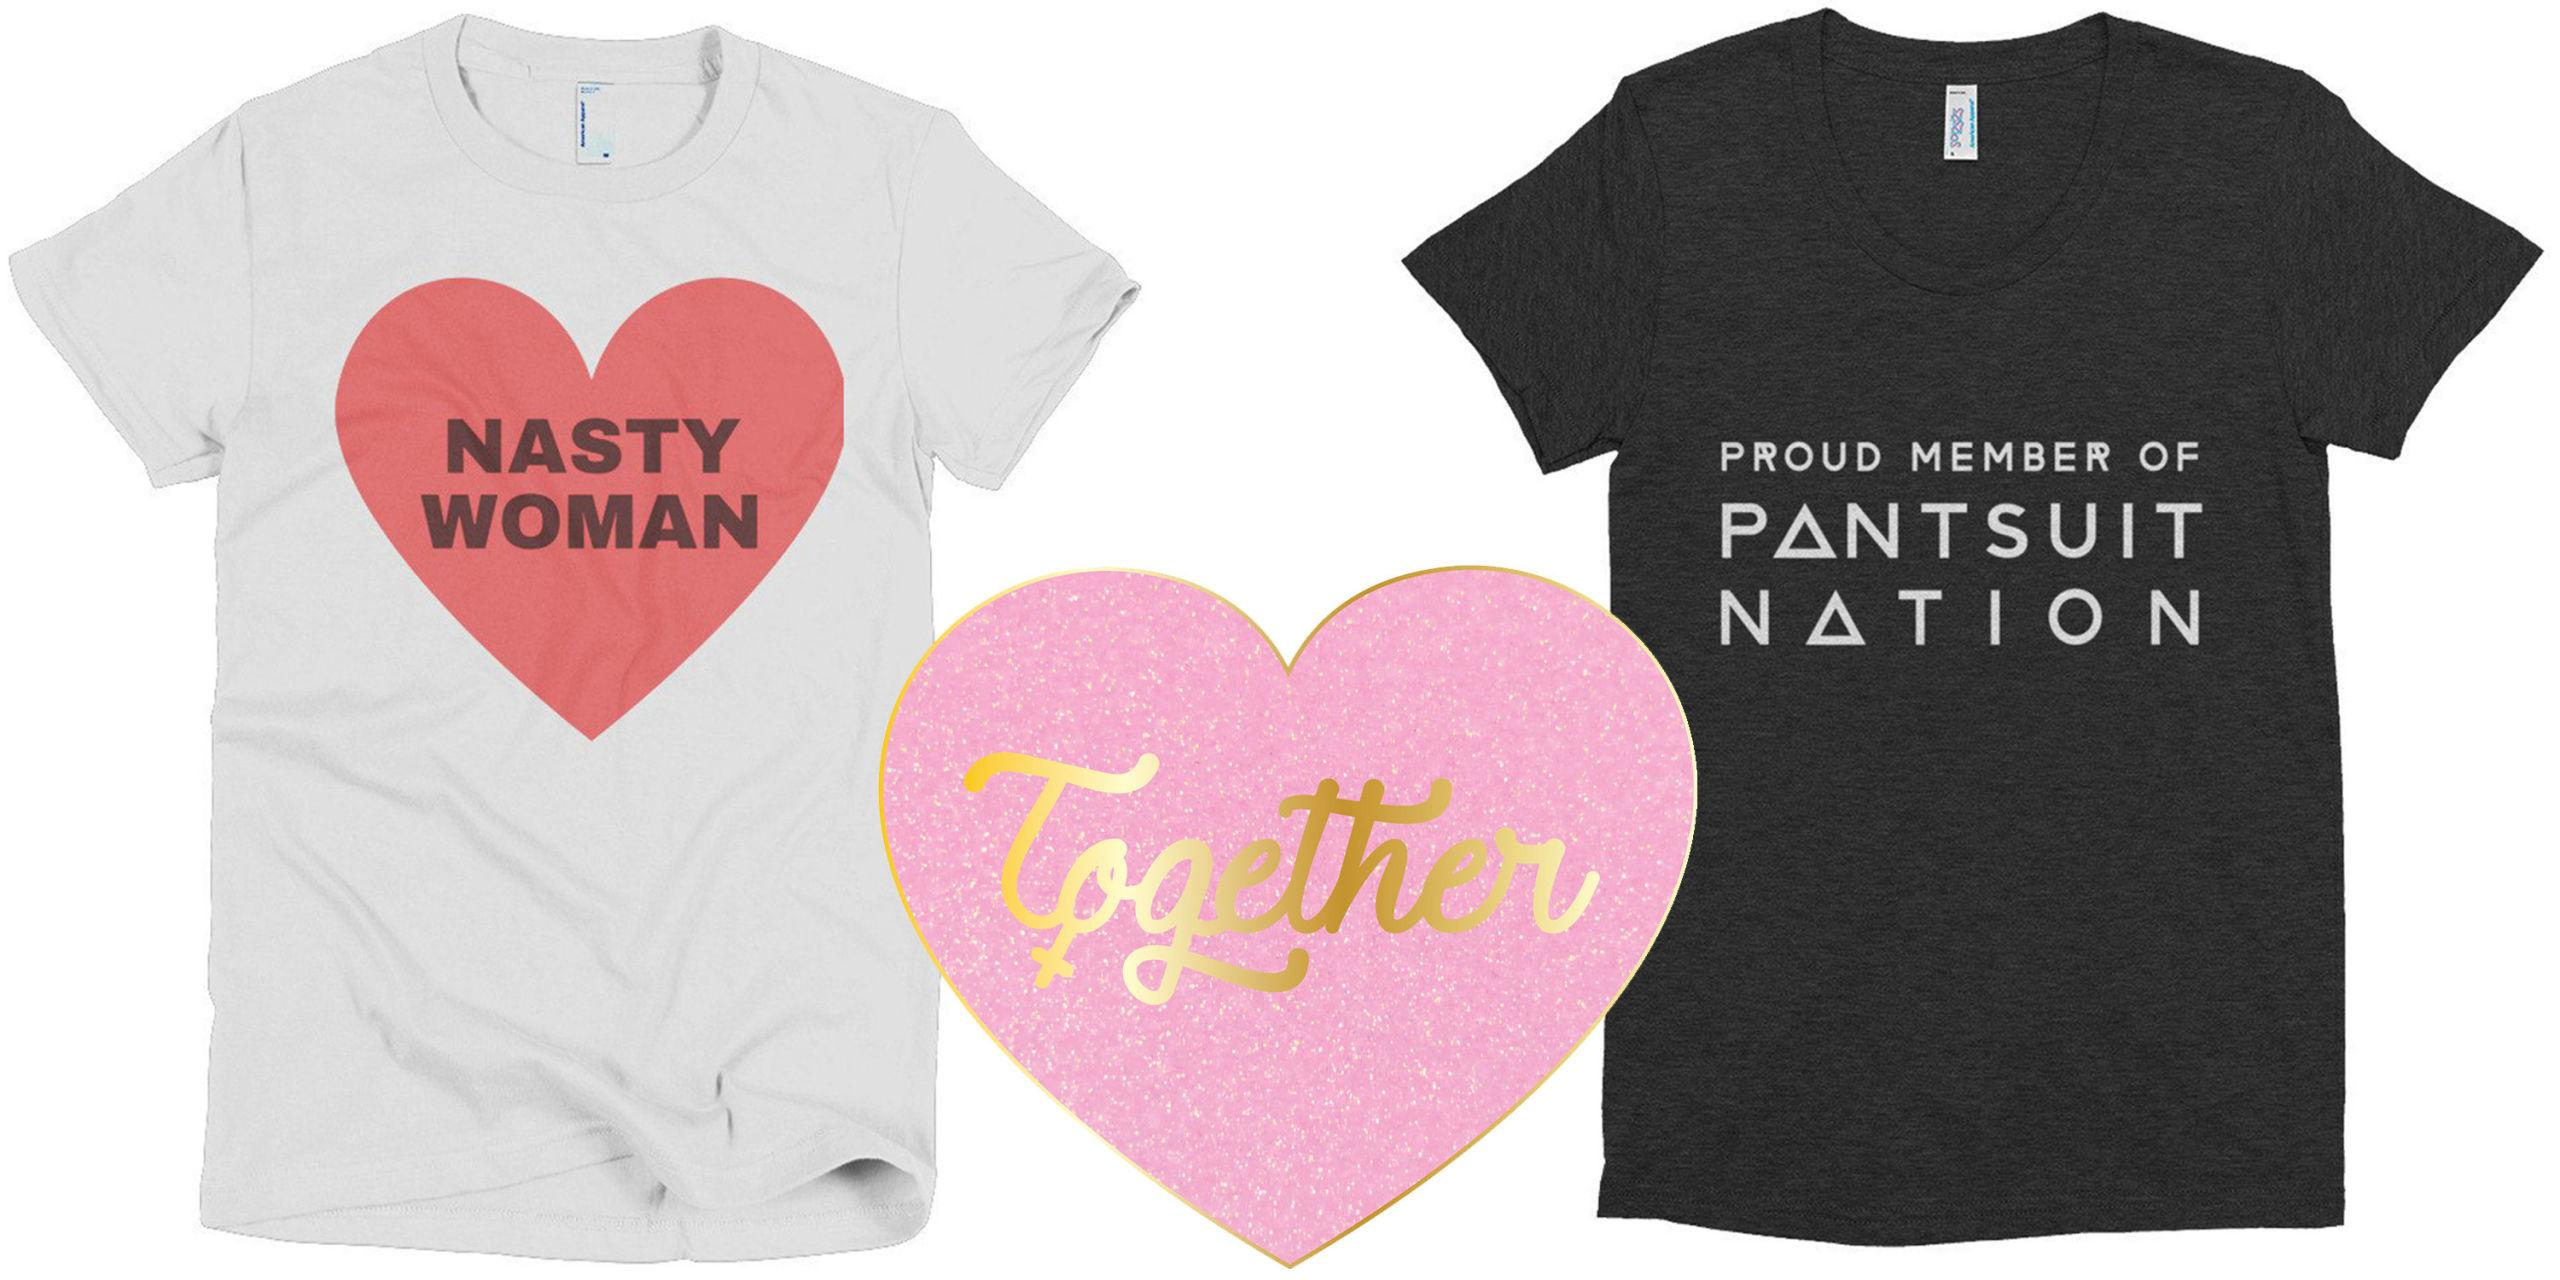 The Best Items to Shop That Support Planned Parenthood